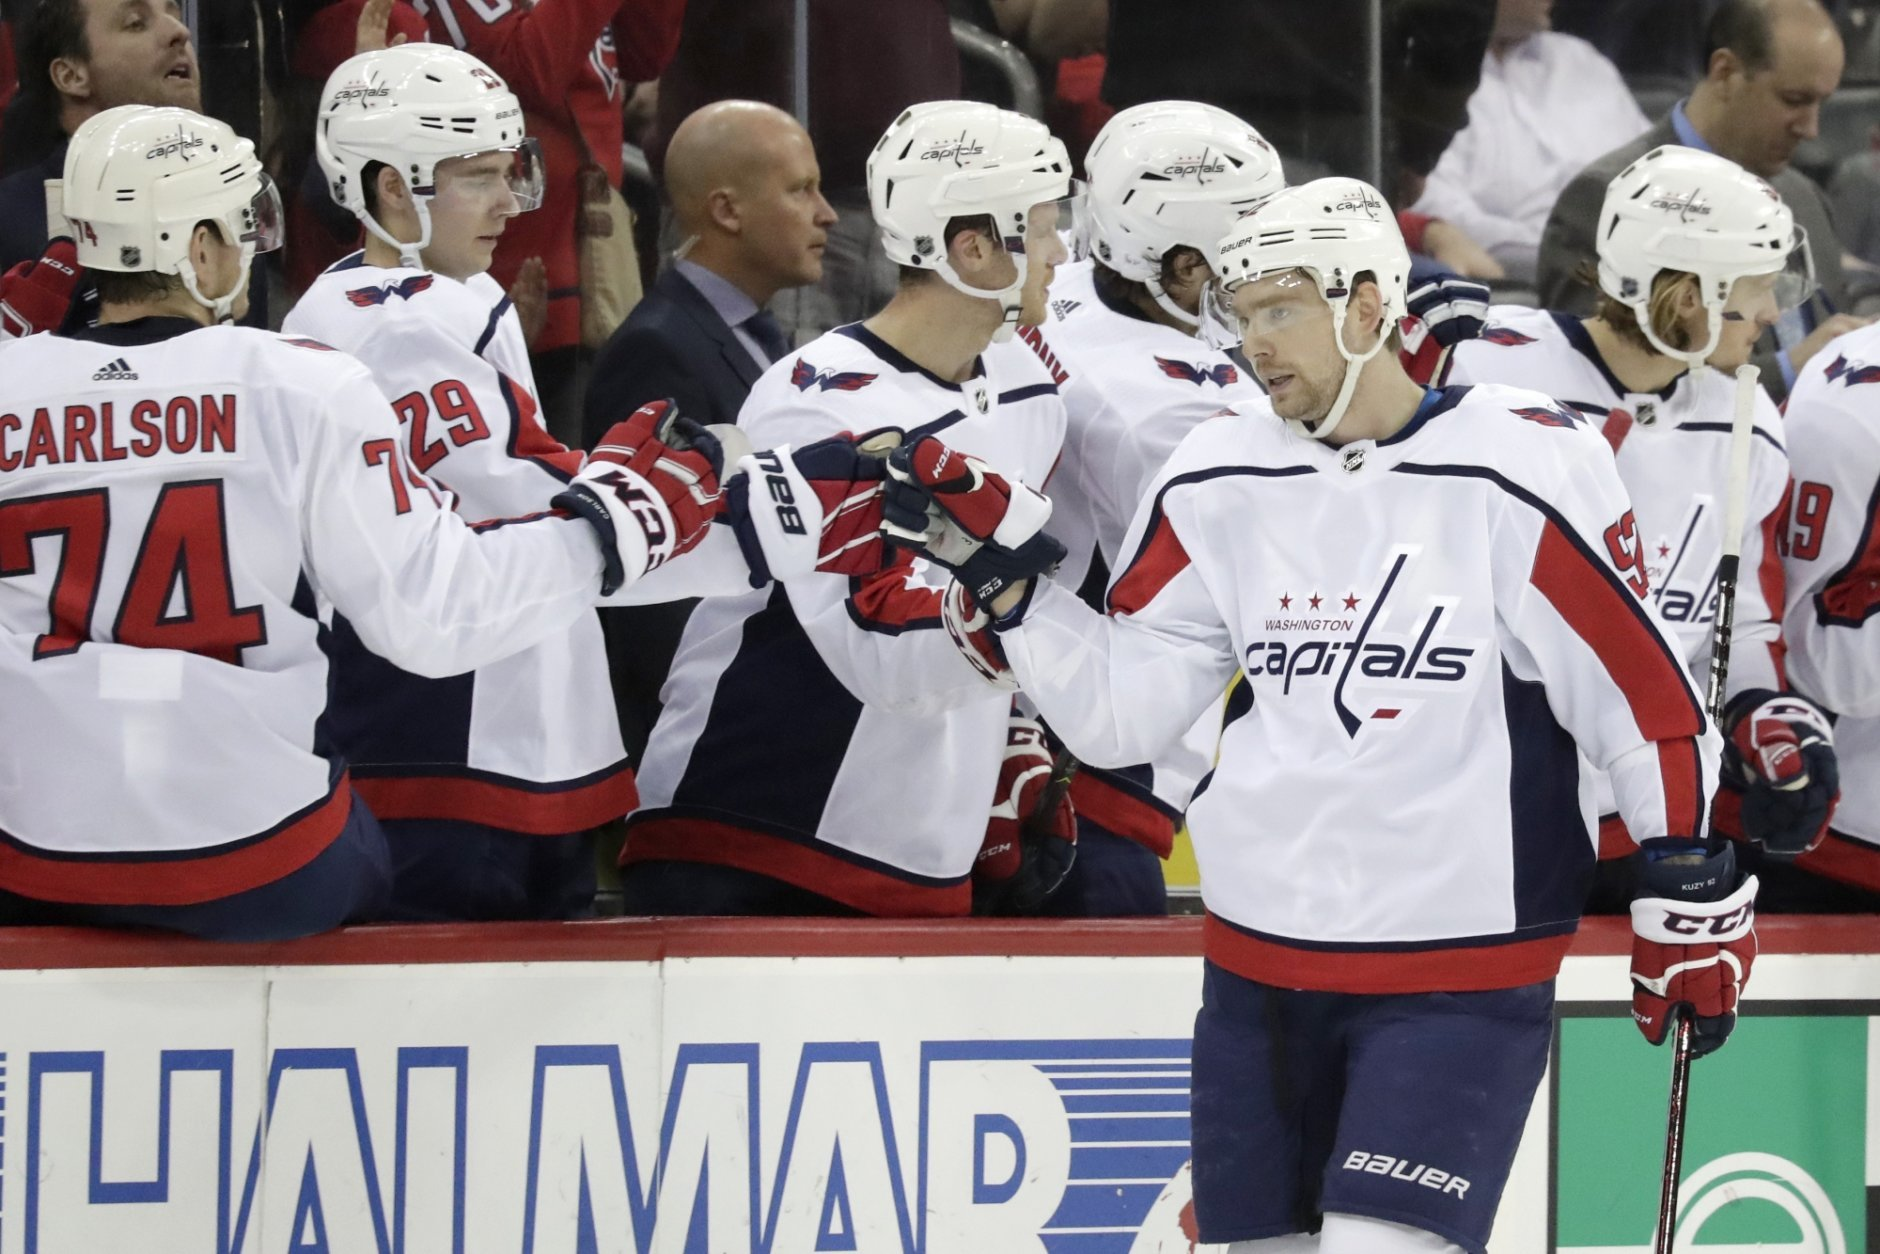 Washington Capitals center Evgeny Kuznetsov (92), of Russia, skates by his bench after scoring a goal on the New Jersey Devils during the second period of an NHL hockey game, Tuesday, March 19, 2019, in Newark, N.J. (AP Photo/Julio Cortez)